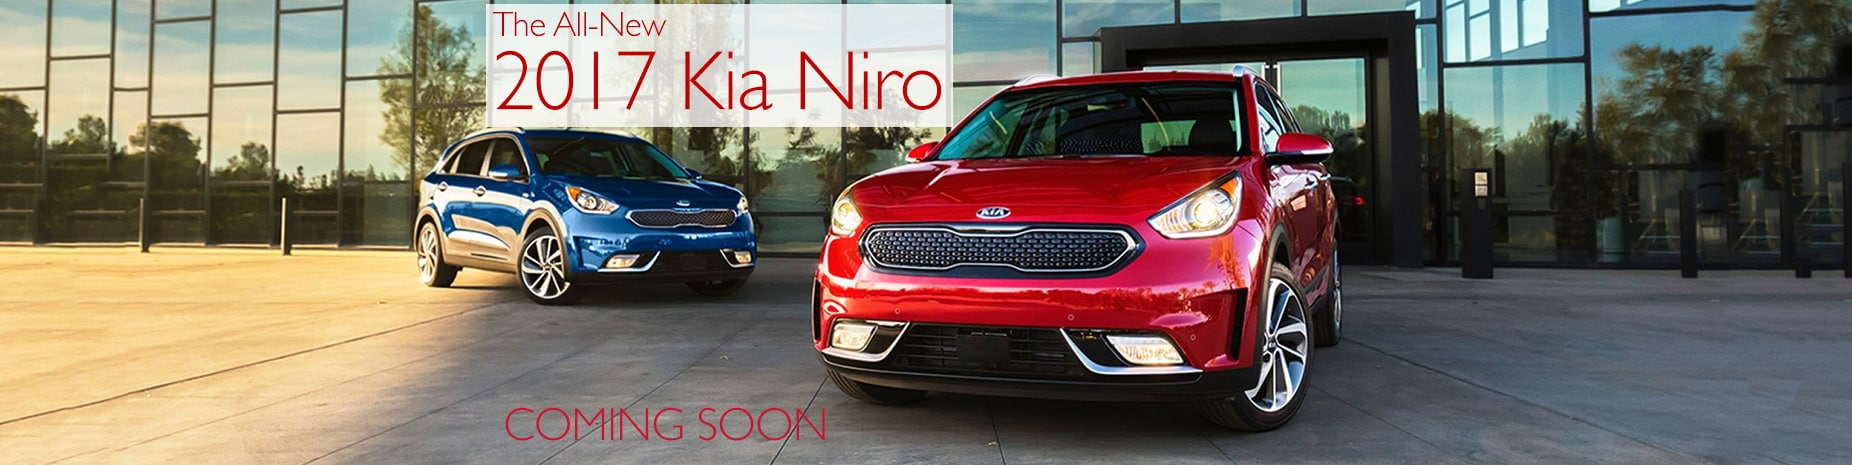 2017 kia niro 2017 kia niro for sale. Black Bedroom Furniture Sets. Home Design Ideas